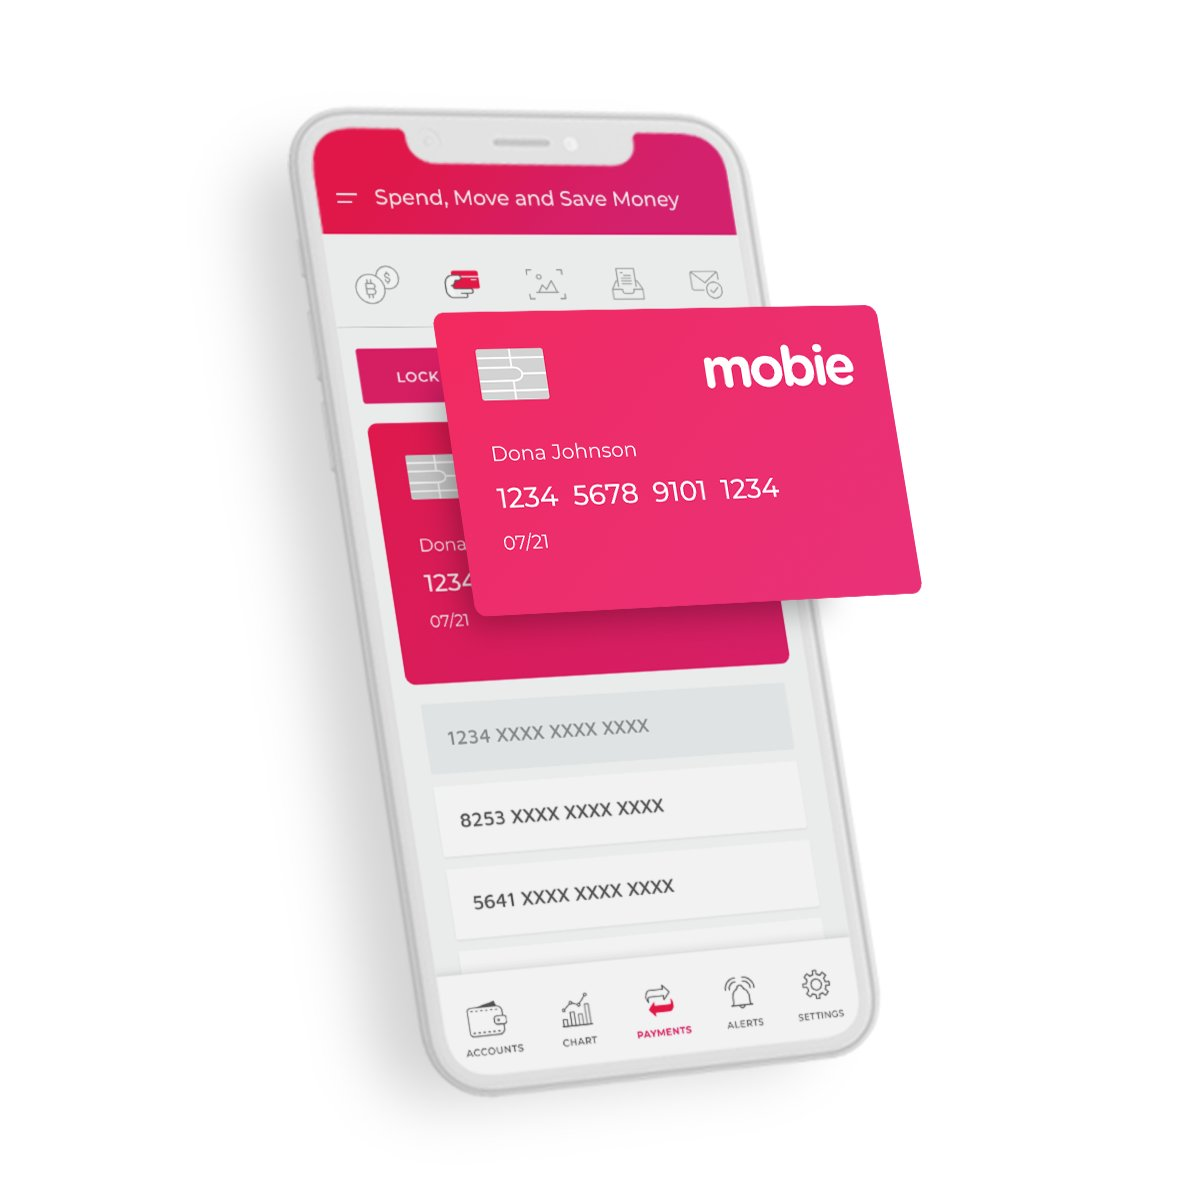 #MobiePay will let you spend or send #cash and #digitalcurrency instantly from your mobile phone without too much hustle.  Easy as that. You want more?   Visit our website now for more information:  https://mobiepay.io/  #cryptocurrency #blockchain #defi #finance #fintechpic.twitter.com/dyS3KId406